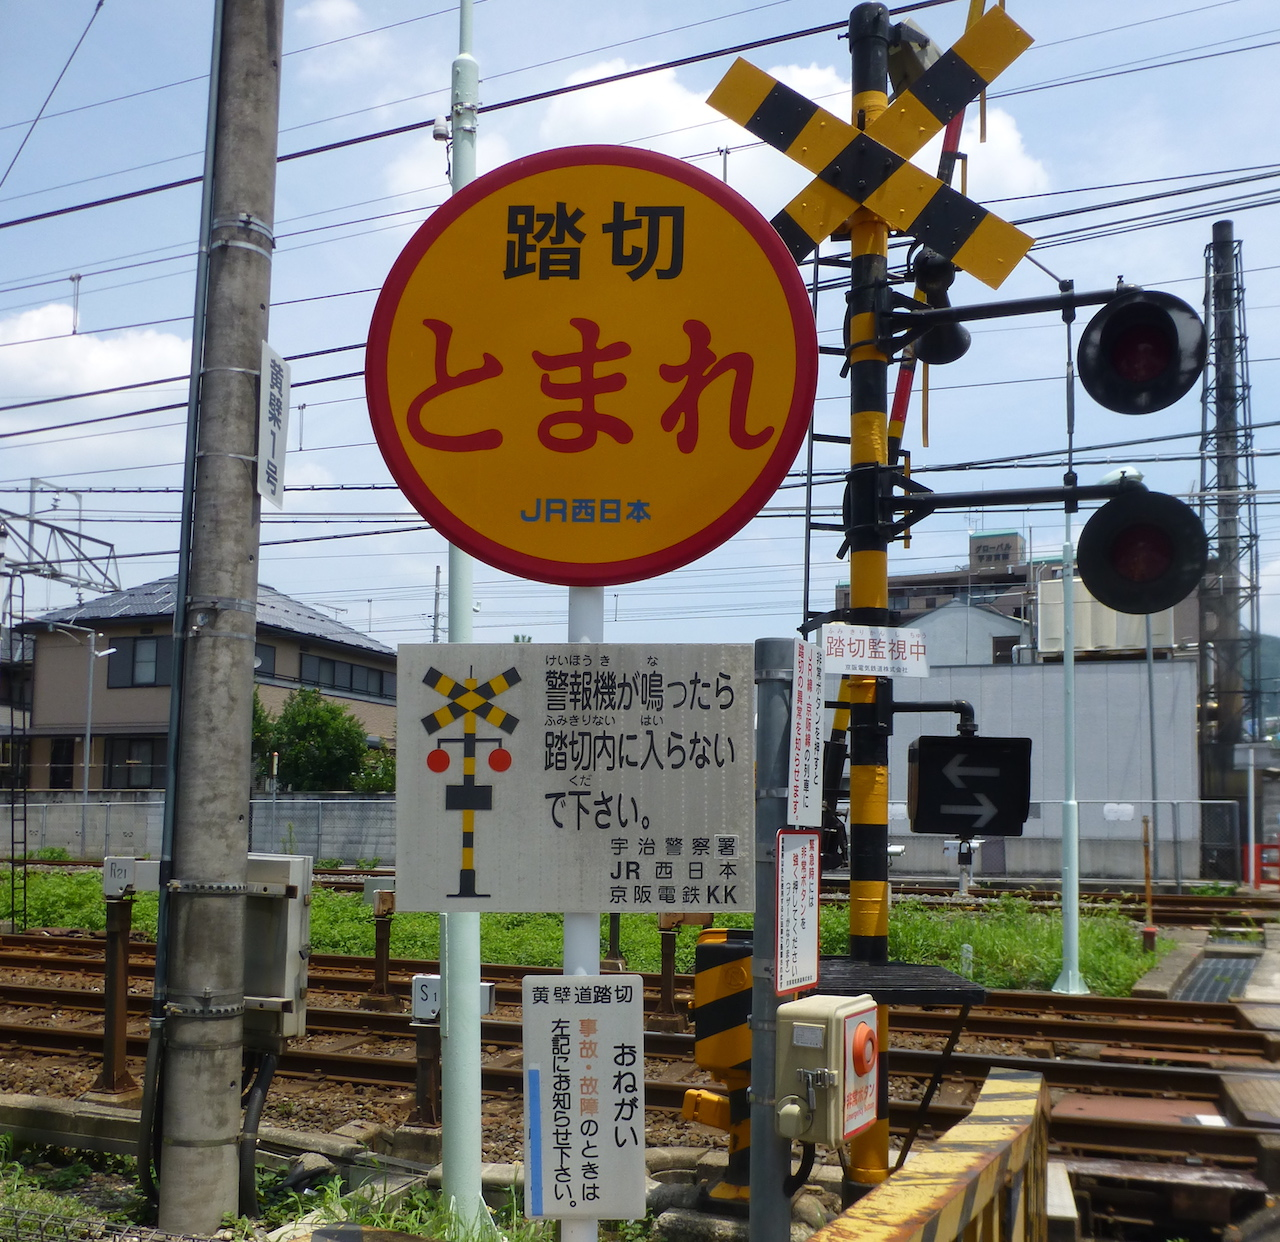 Railway crossing near Kyoto